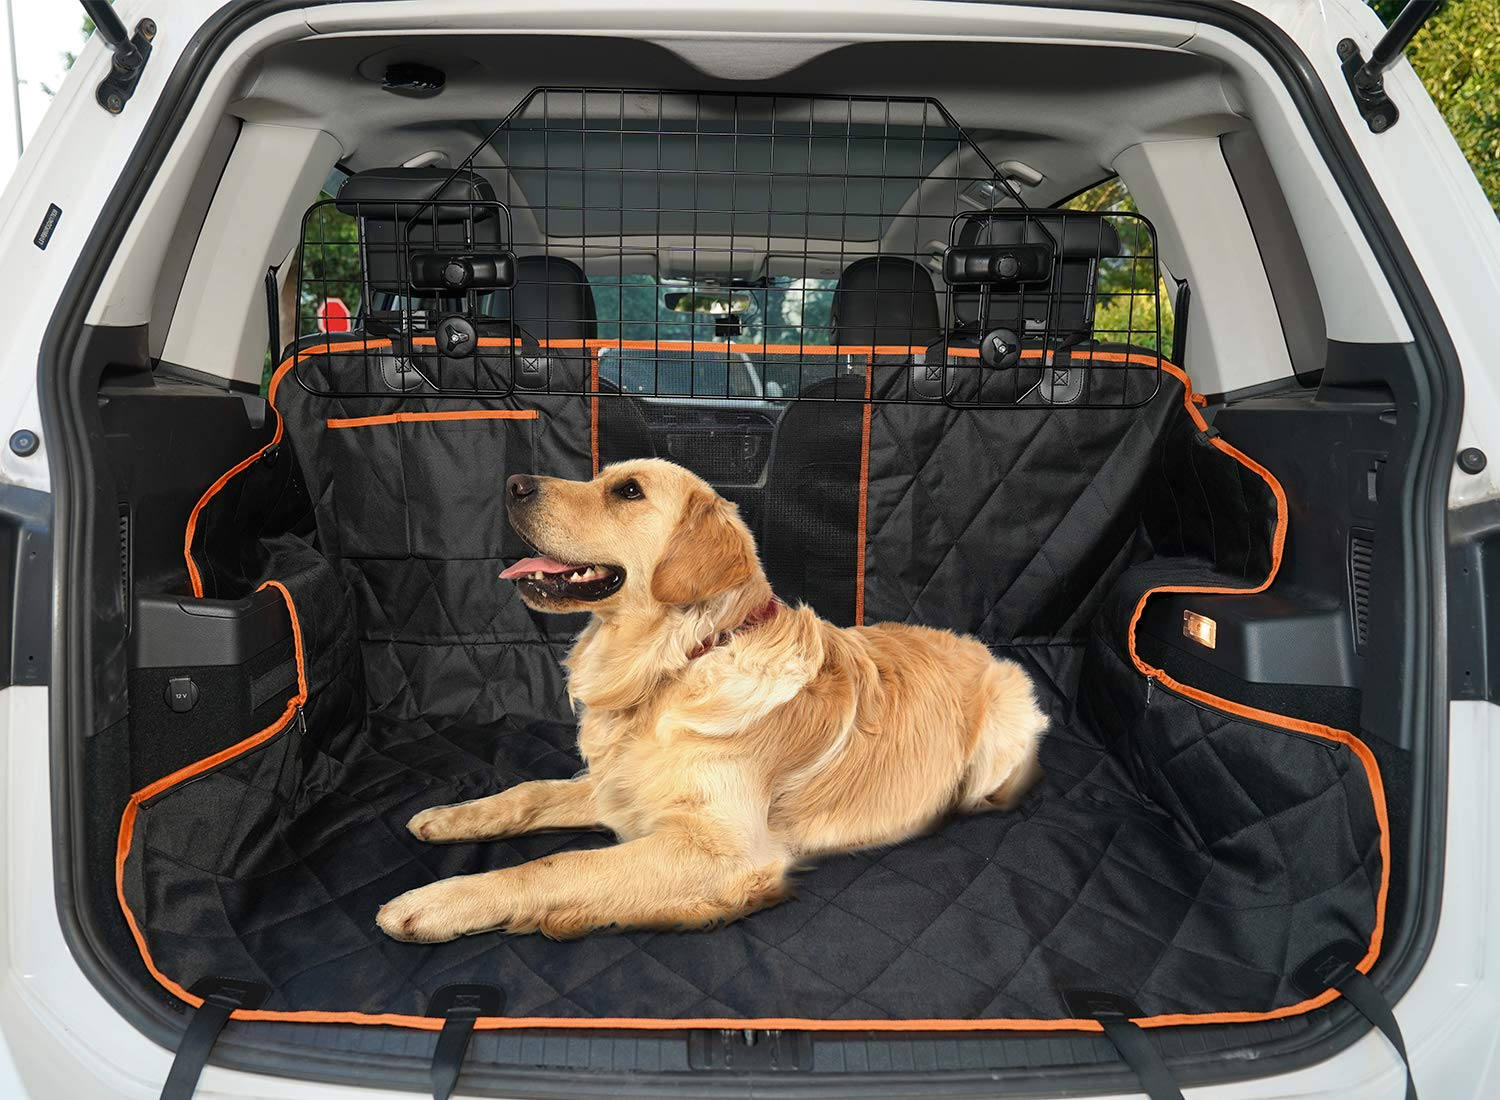 SUKI&SAMI Dog Car Barrier Adjustable Pet Barrier for SUVs,Cars and Vehicles,Heavy Duty Wire Adjustable,Smooth Design,Black by SUKI&SAMI (Image #7)